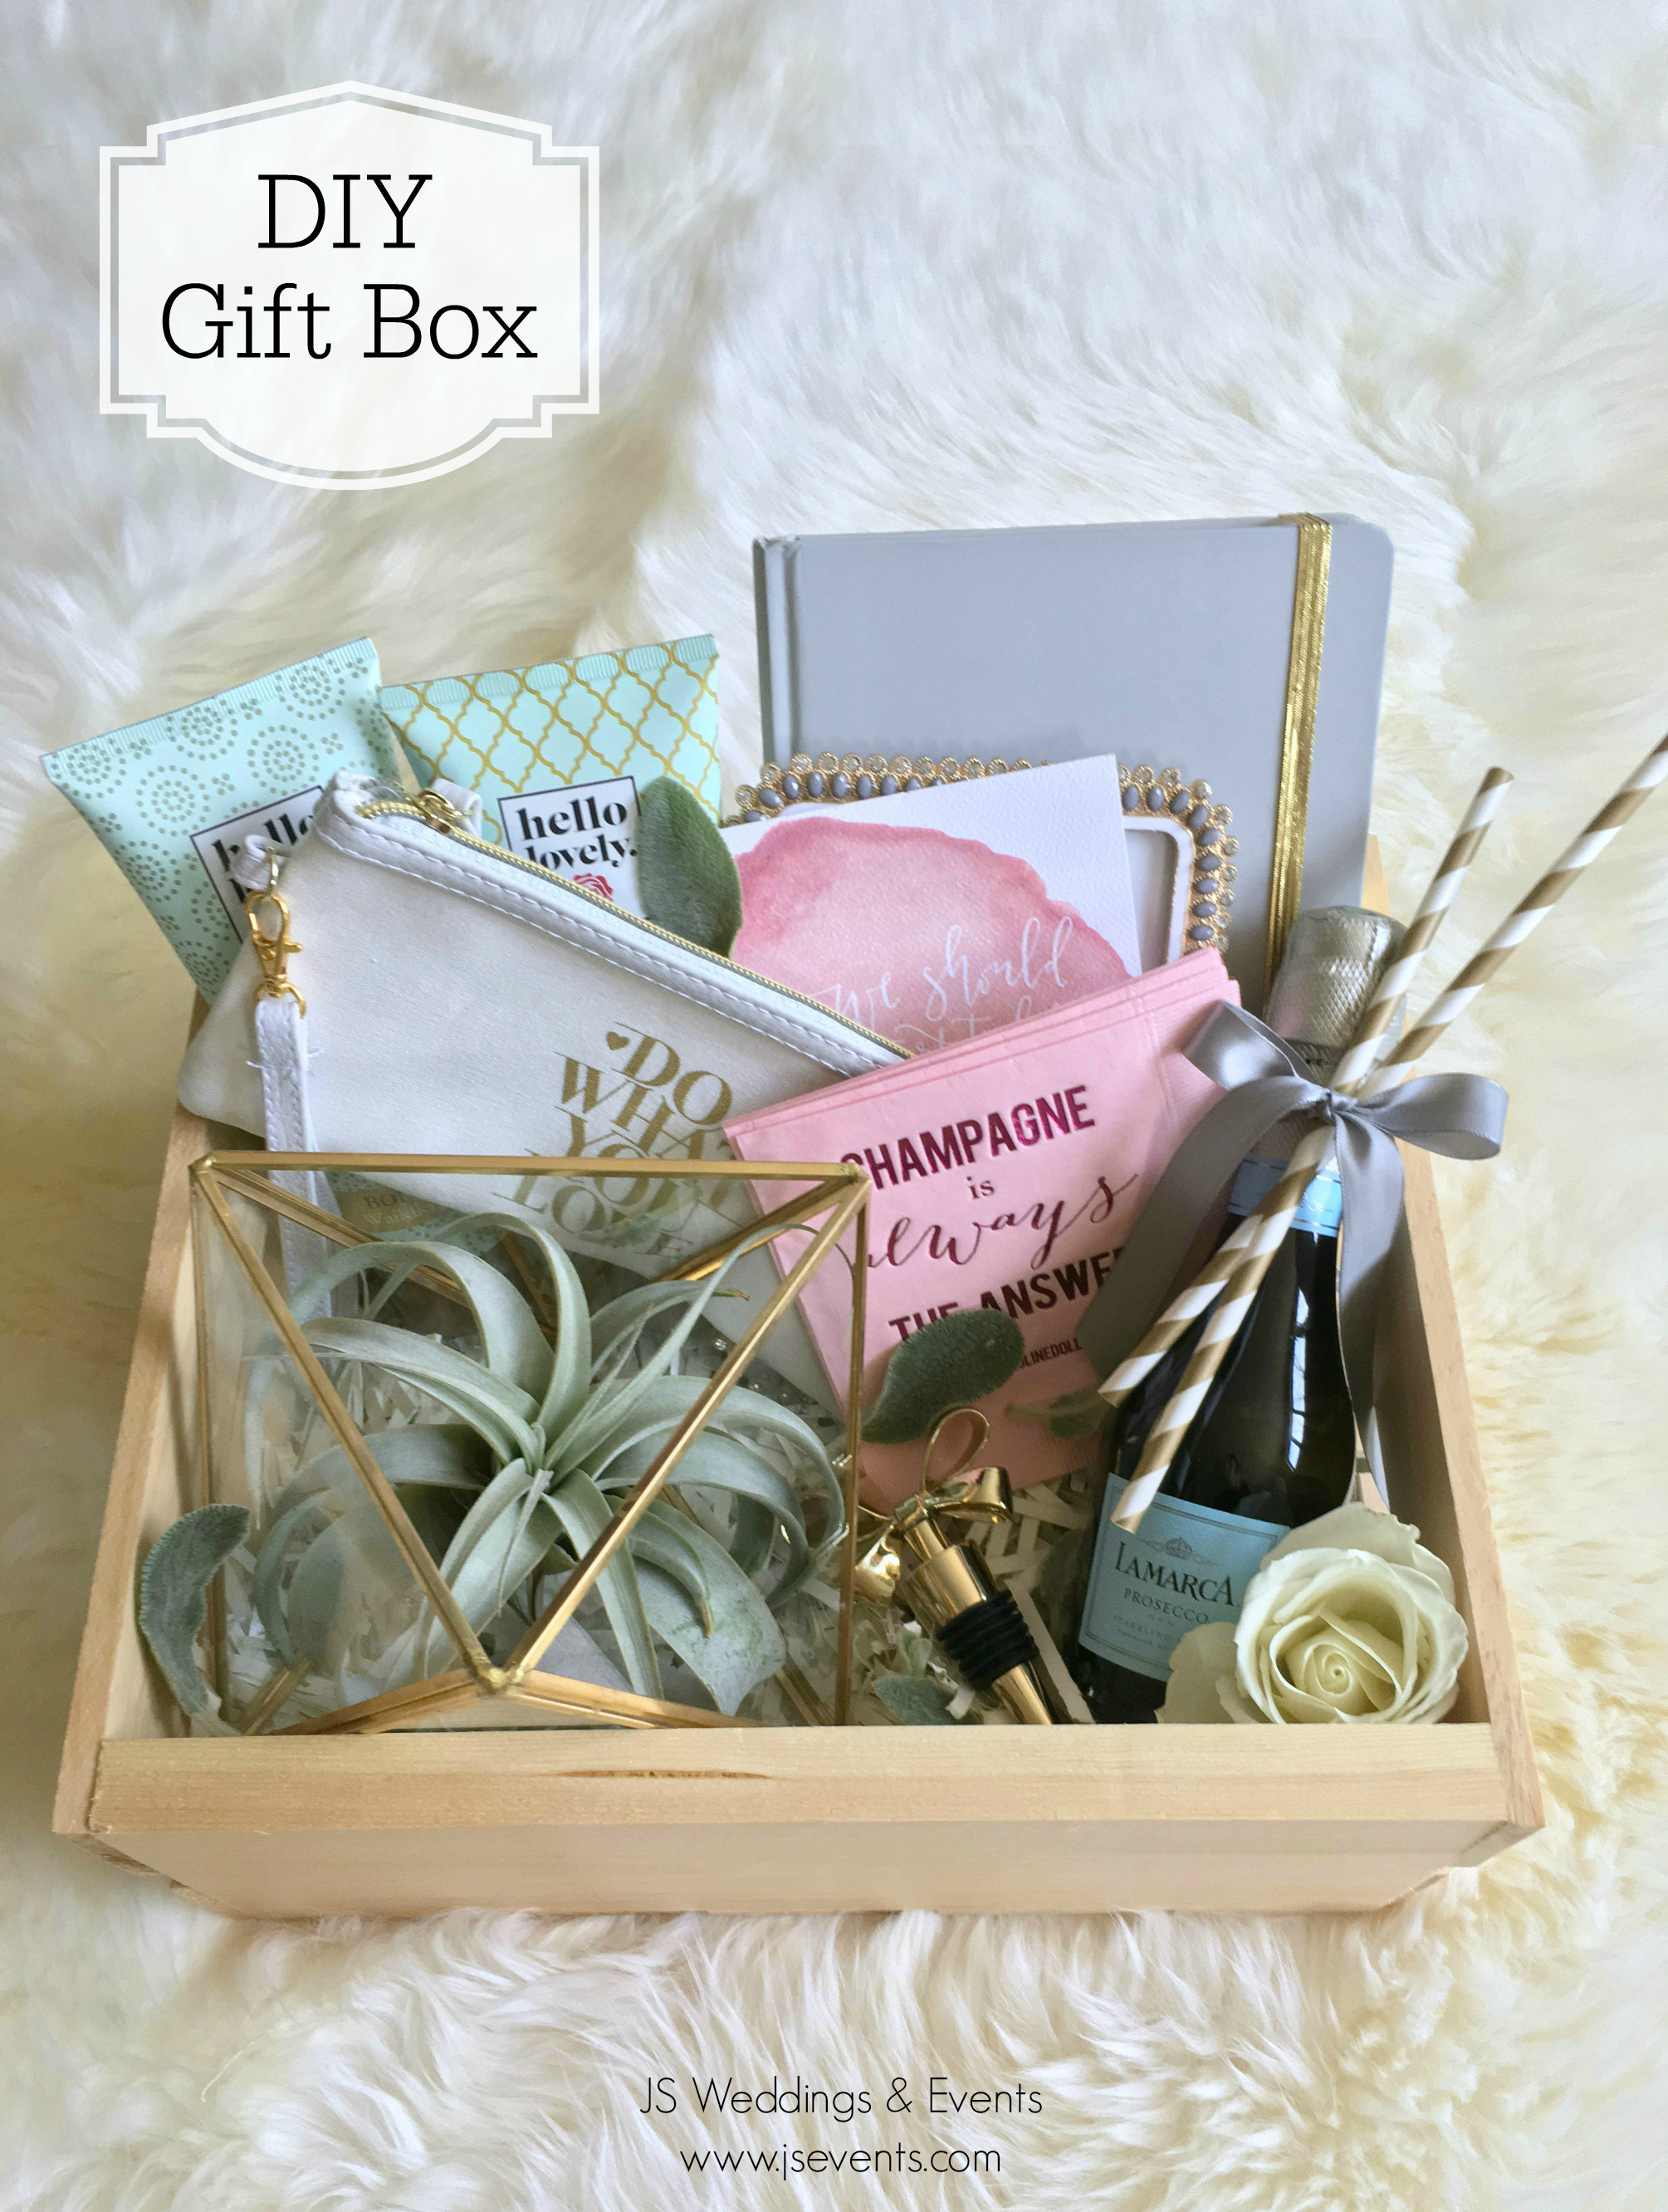 Best ideas about Wedding Gift DIY . Save or Pin DIY Gift Box js weddings and events Now.